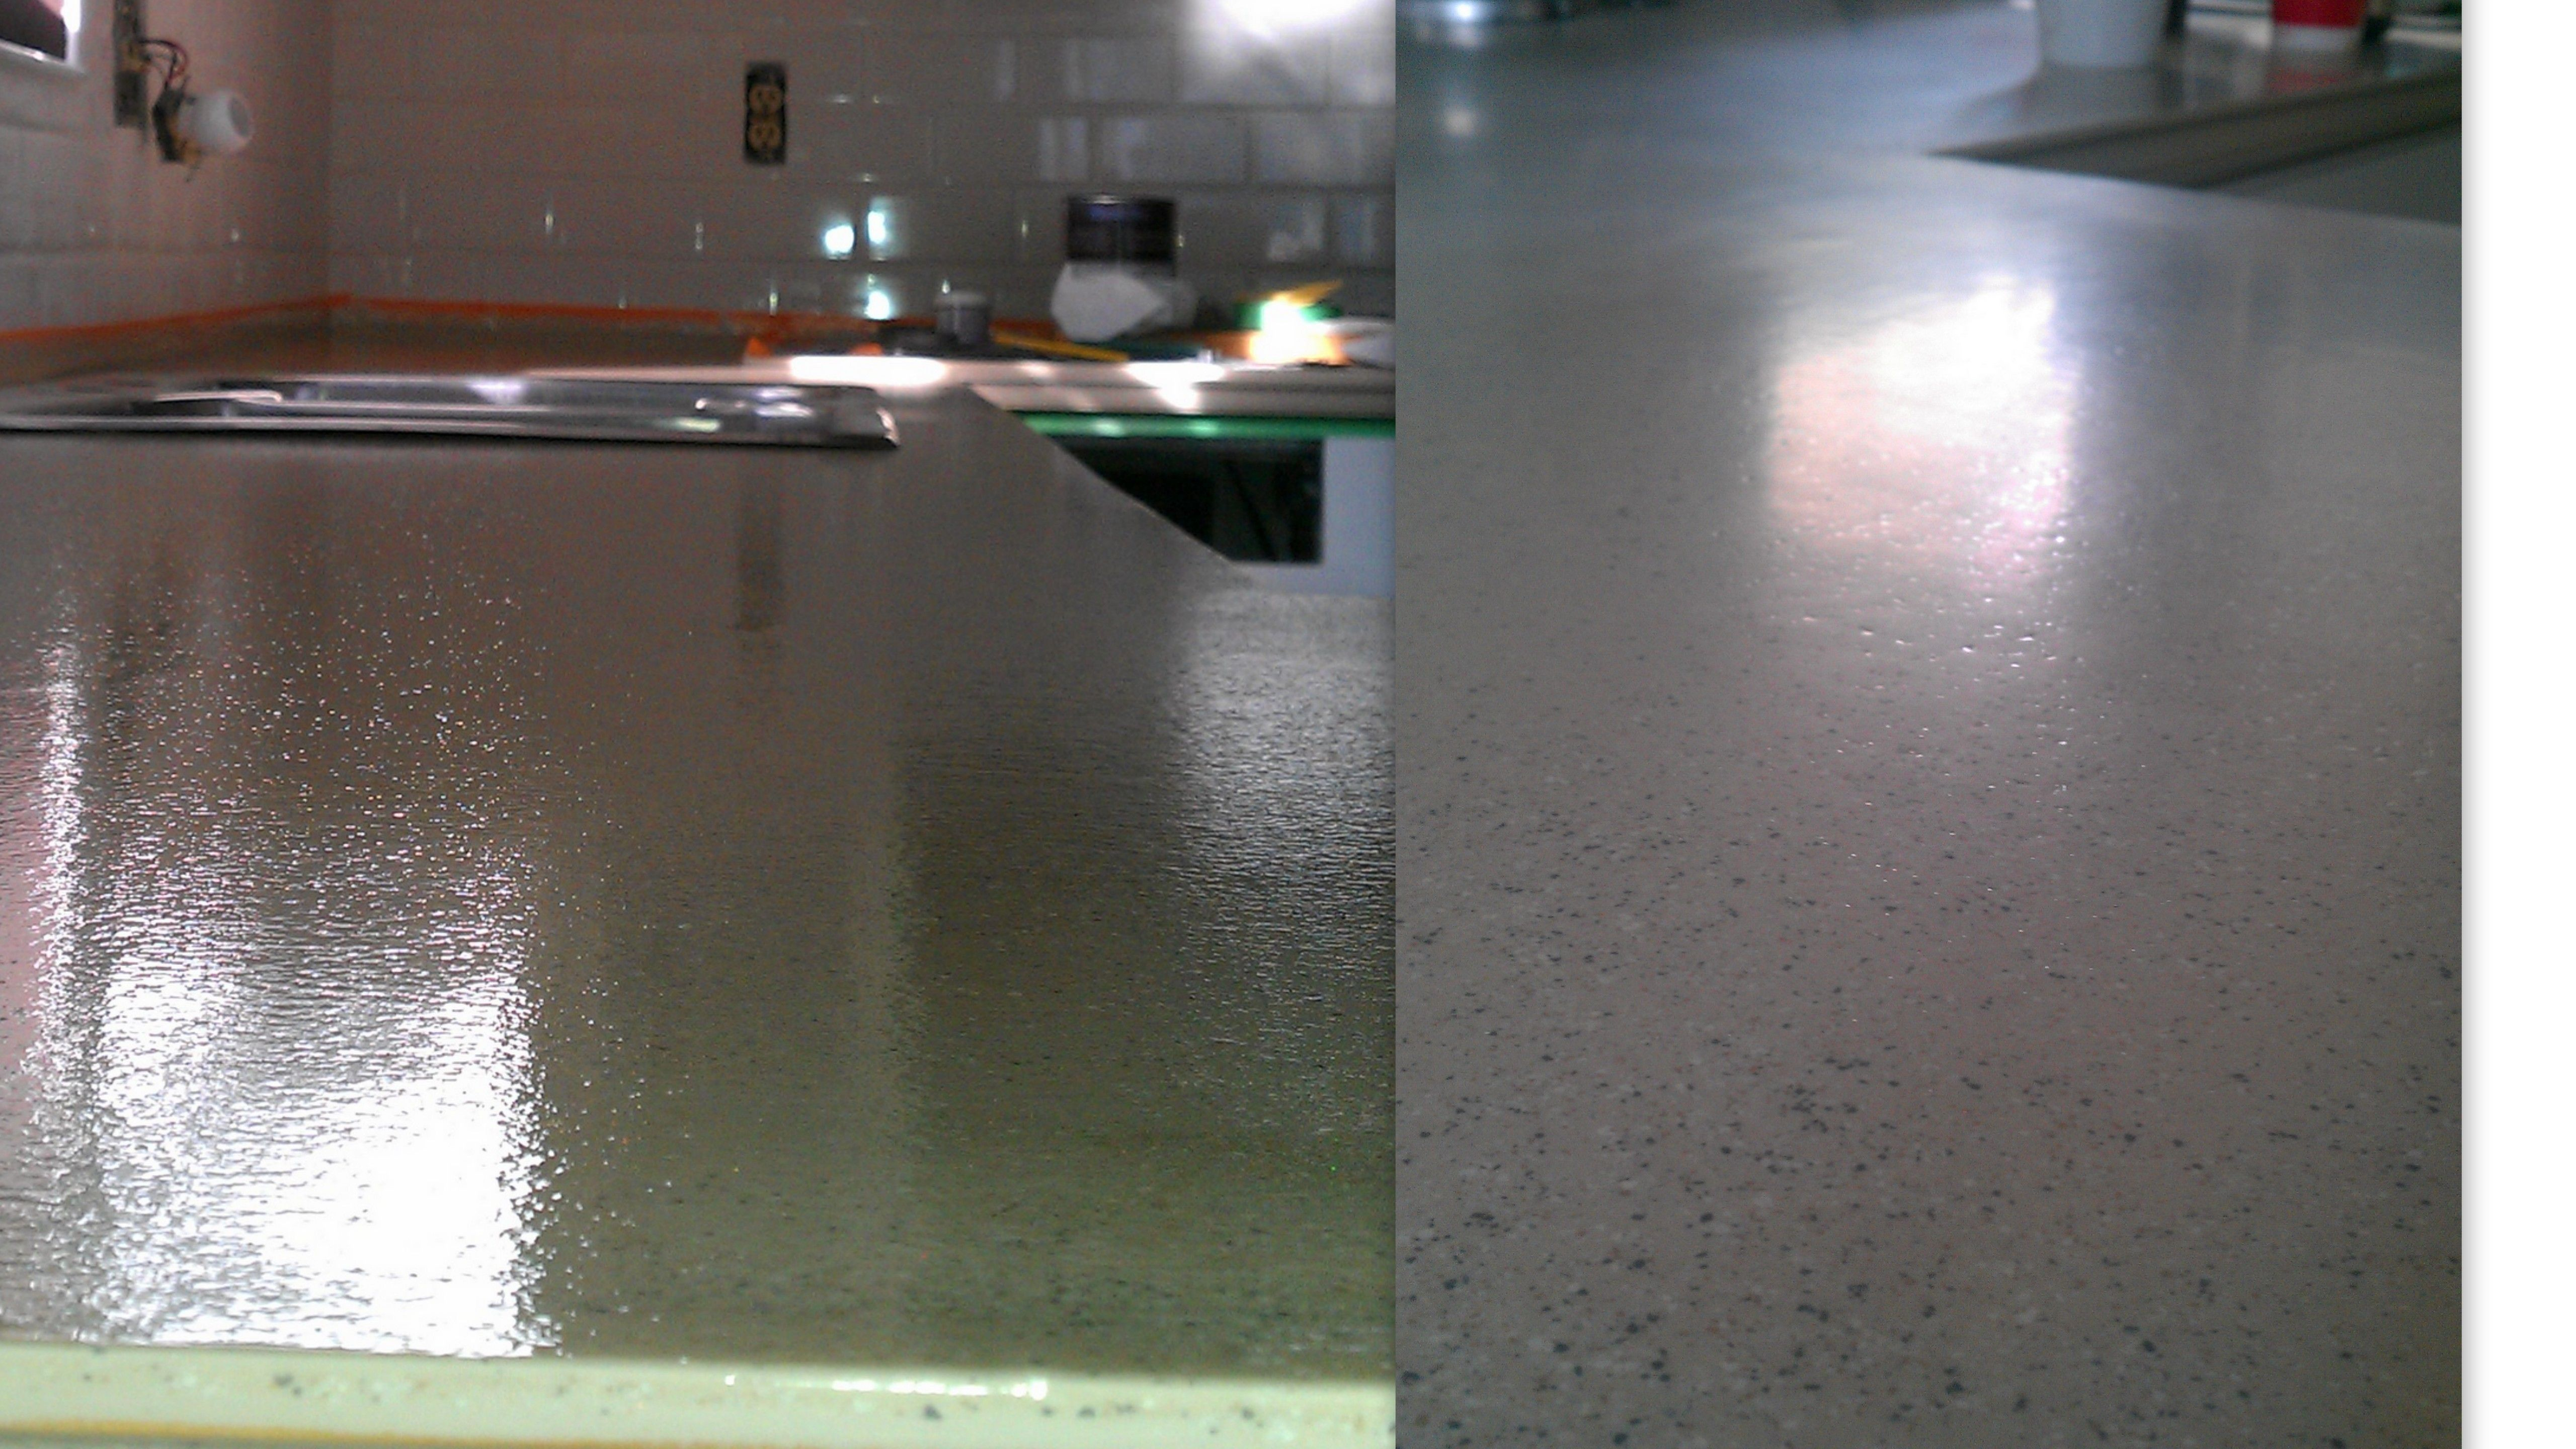 Daich Spreadstone Countertop 19 Comparison Of Daich Coatings Beauti Tone By Techstone